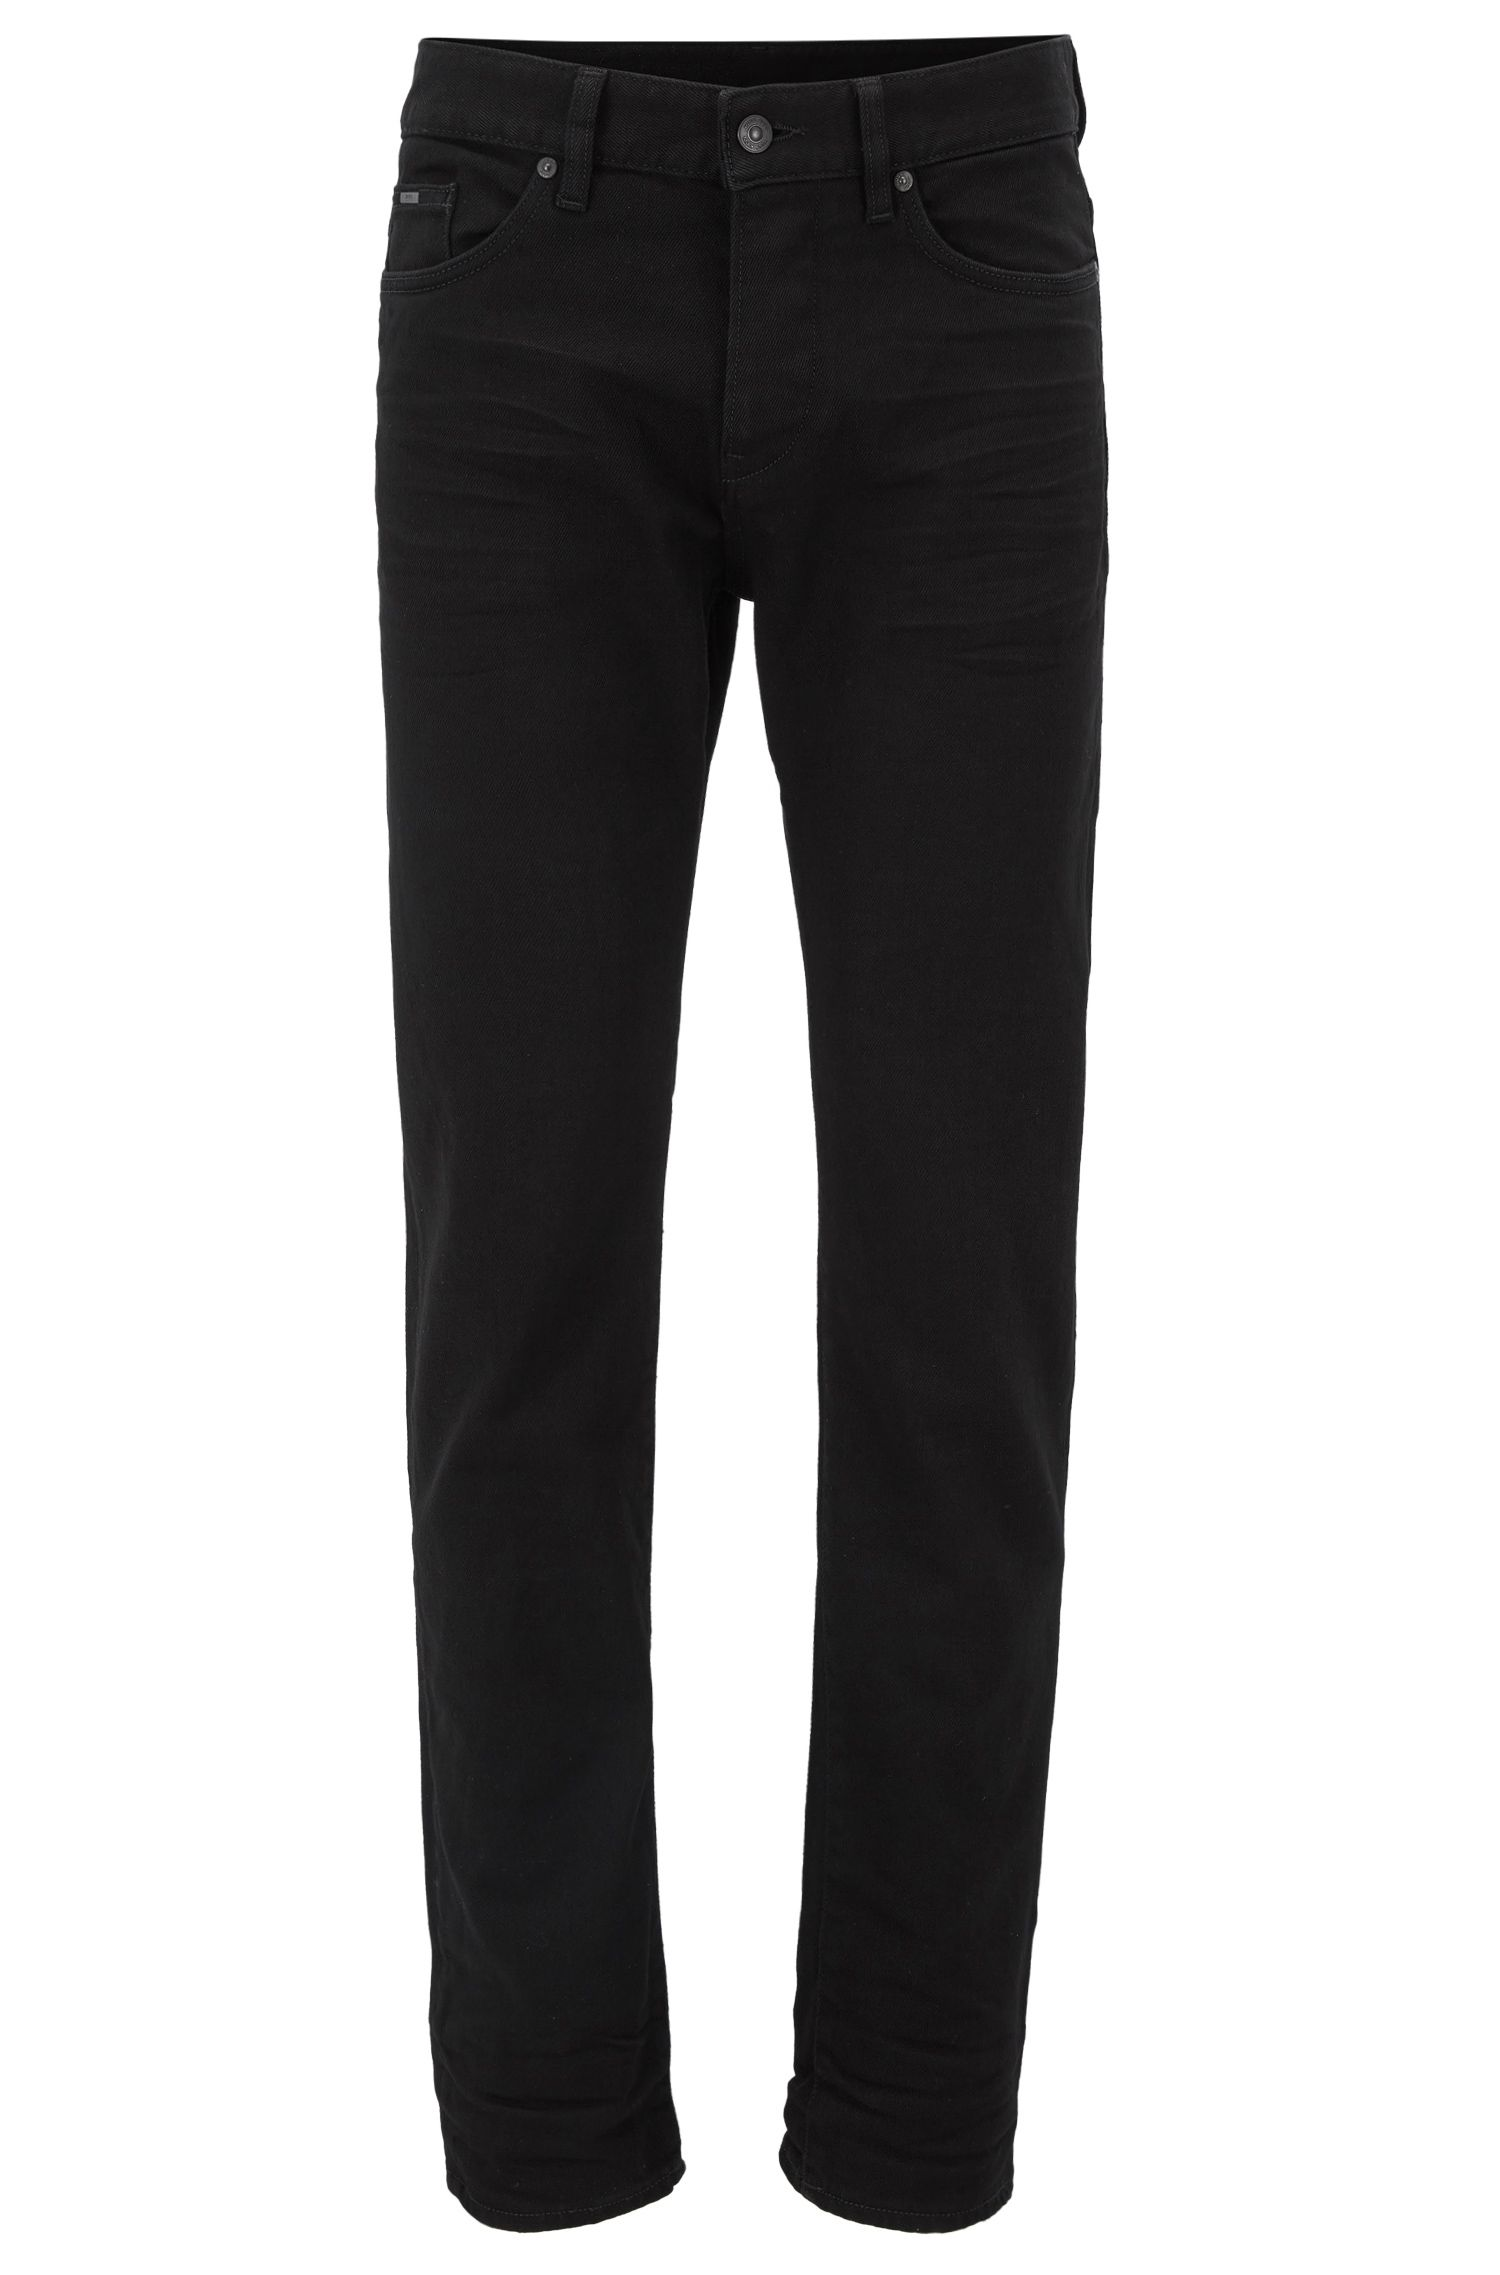 Slim-fit jeans van zwart, rinse-washed stretchdenim